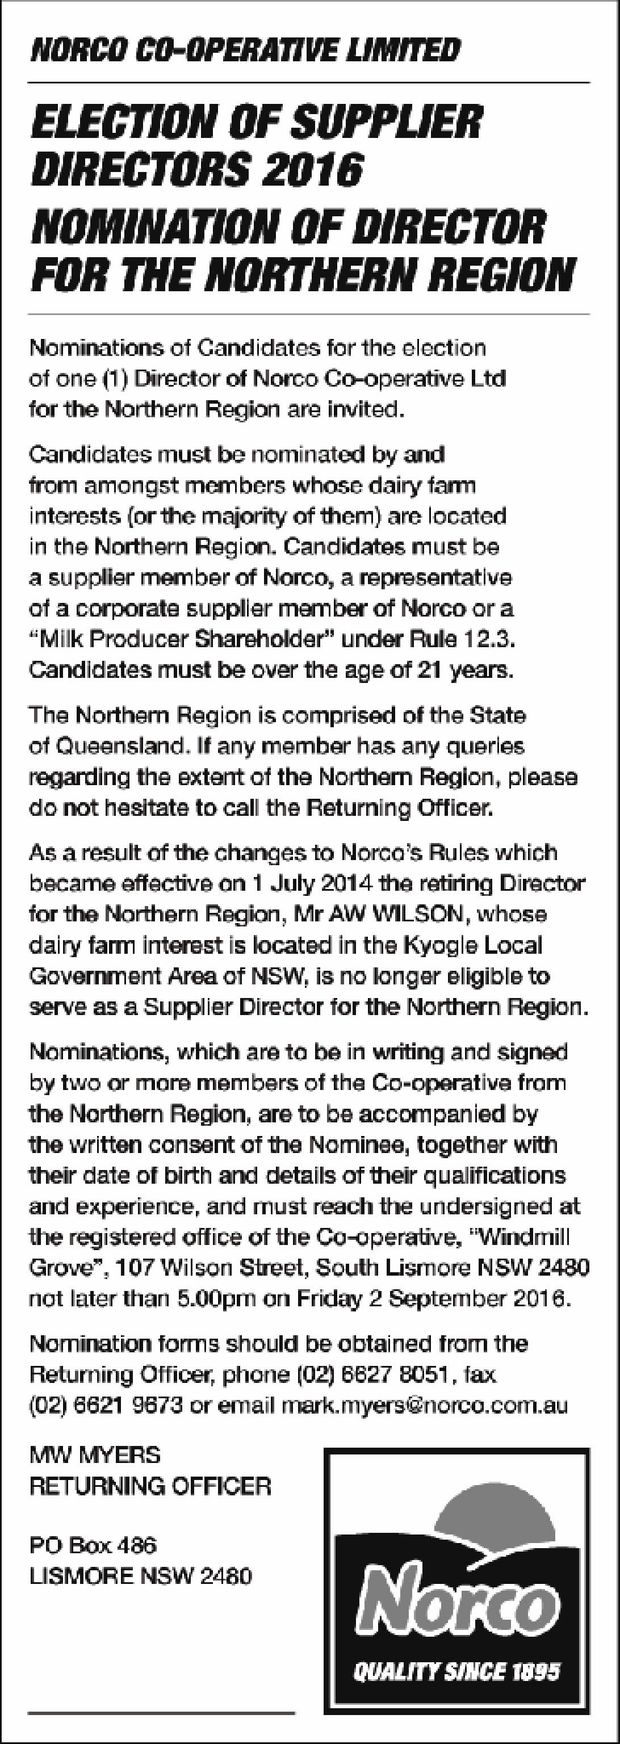 NORCO CO-OPERATIVE LIMITED